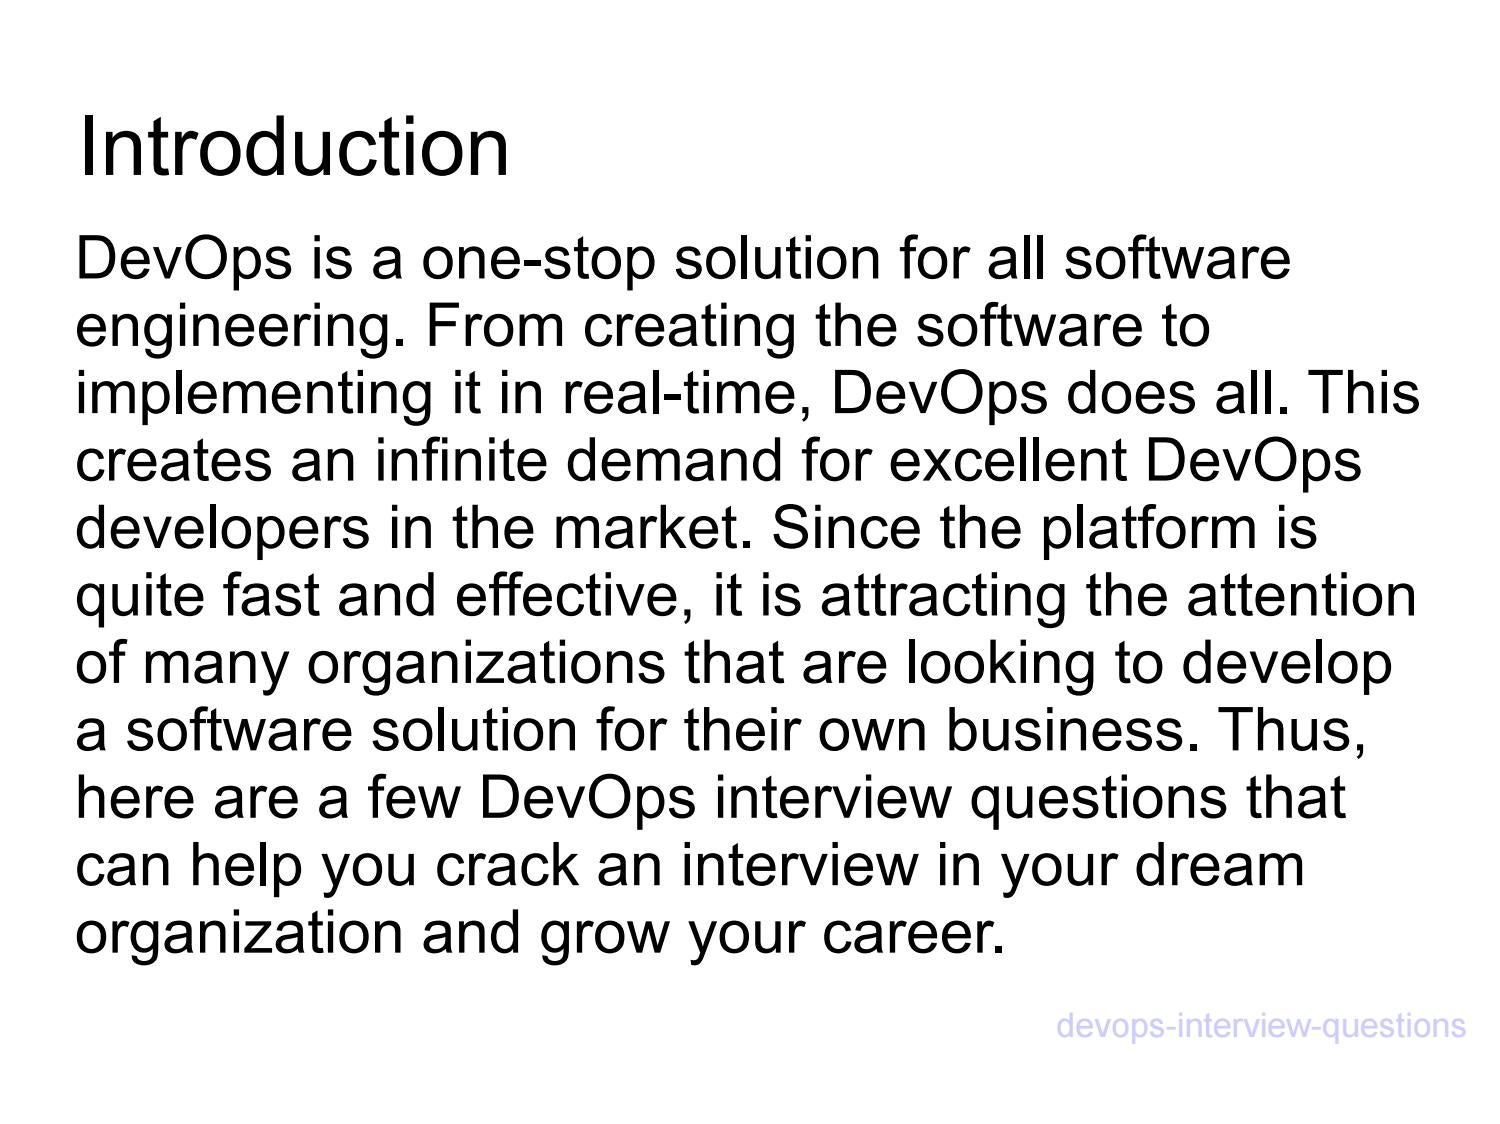 Devops interview questions-ppt by mayankseo16 - issuu